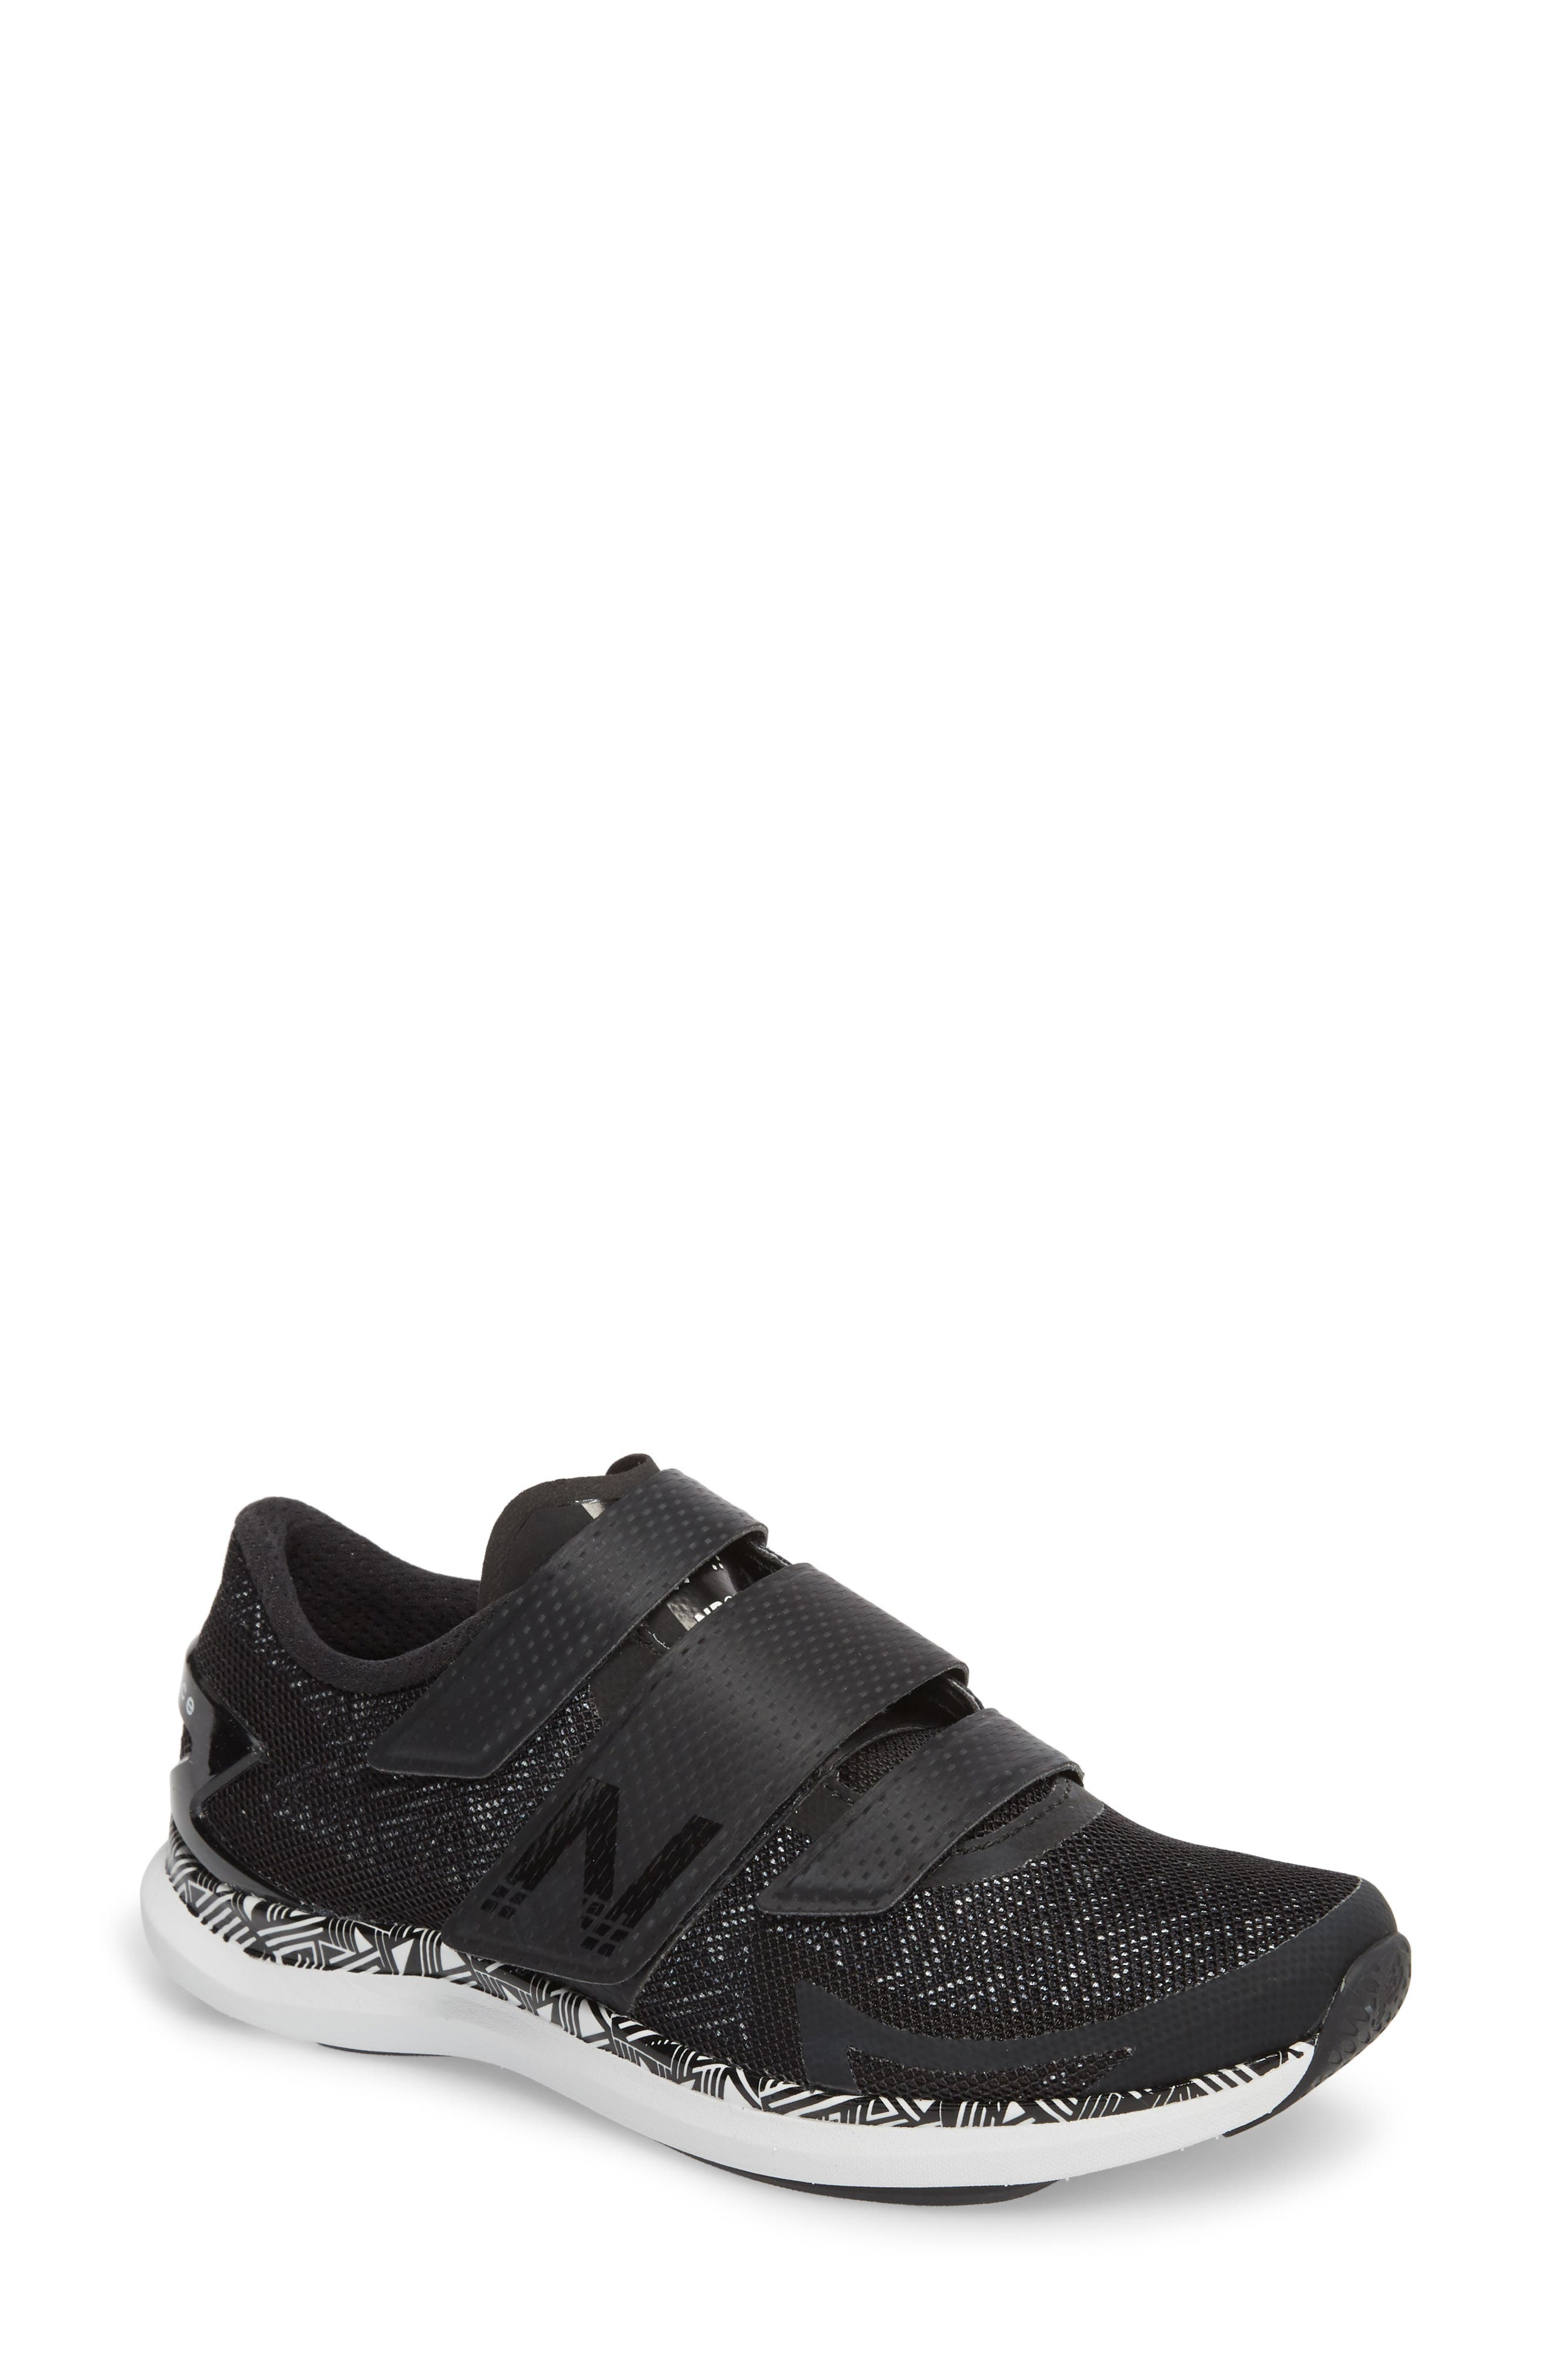 NEW BALANCE Spin 09 Cycling Shoe, Main, color, BLACK/ WHITE